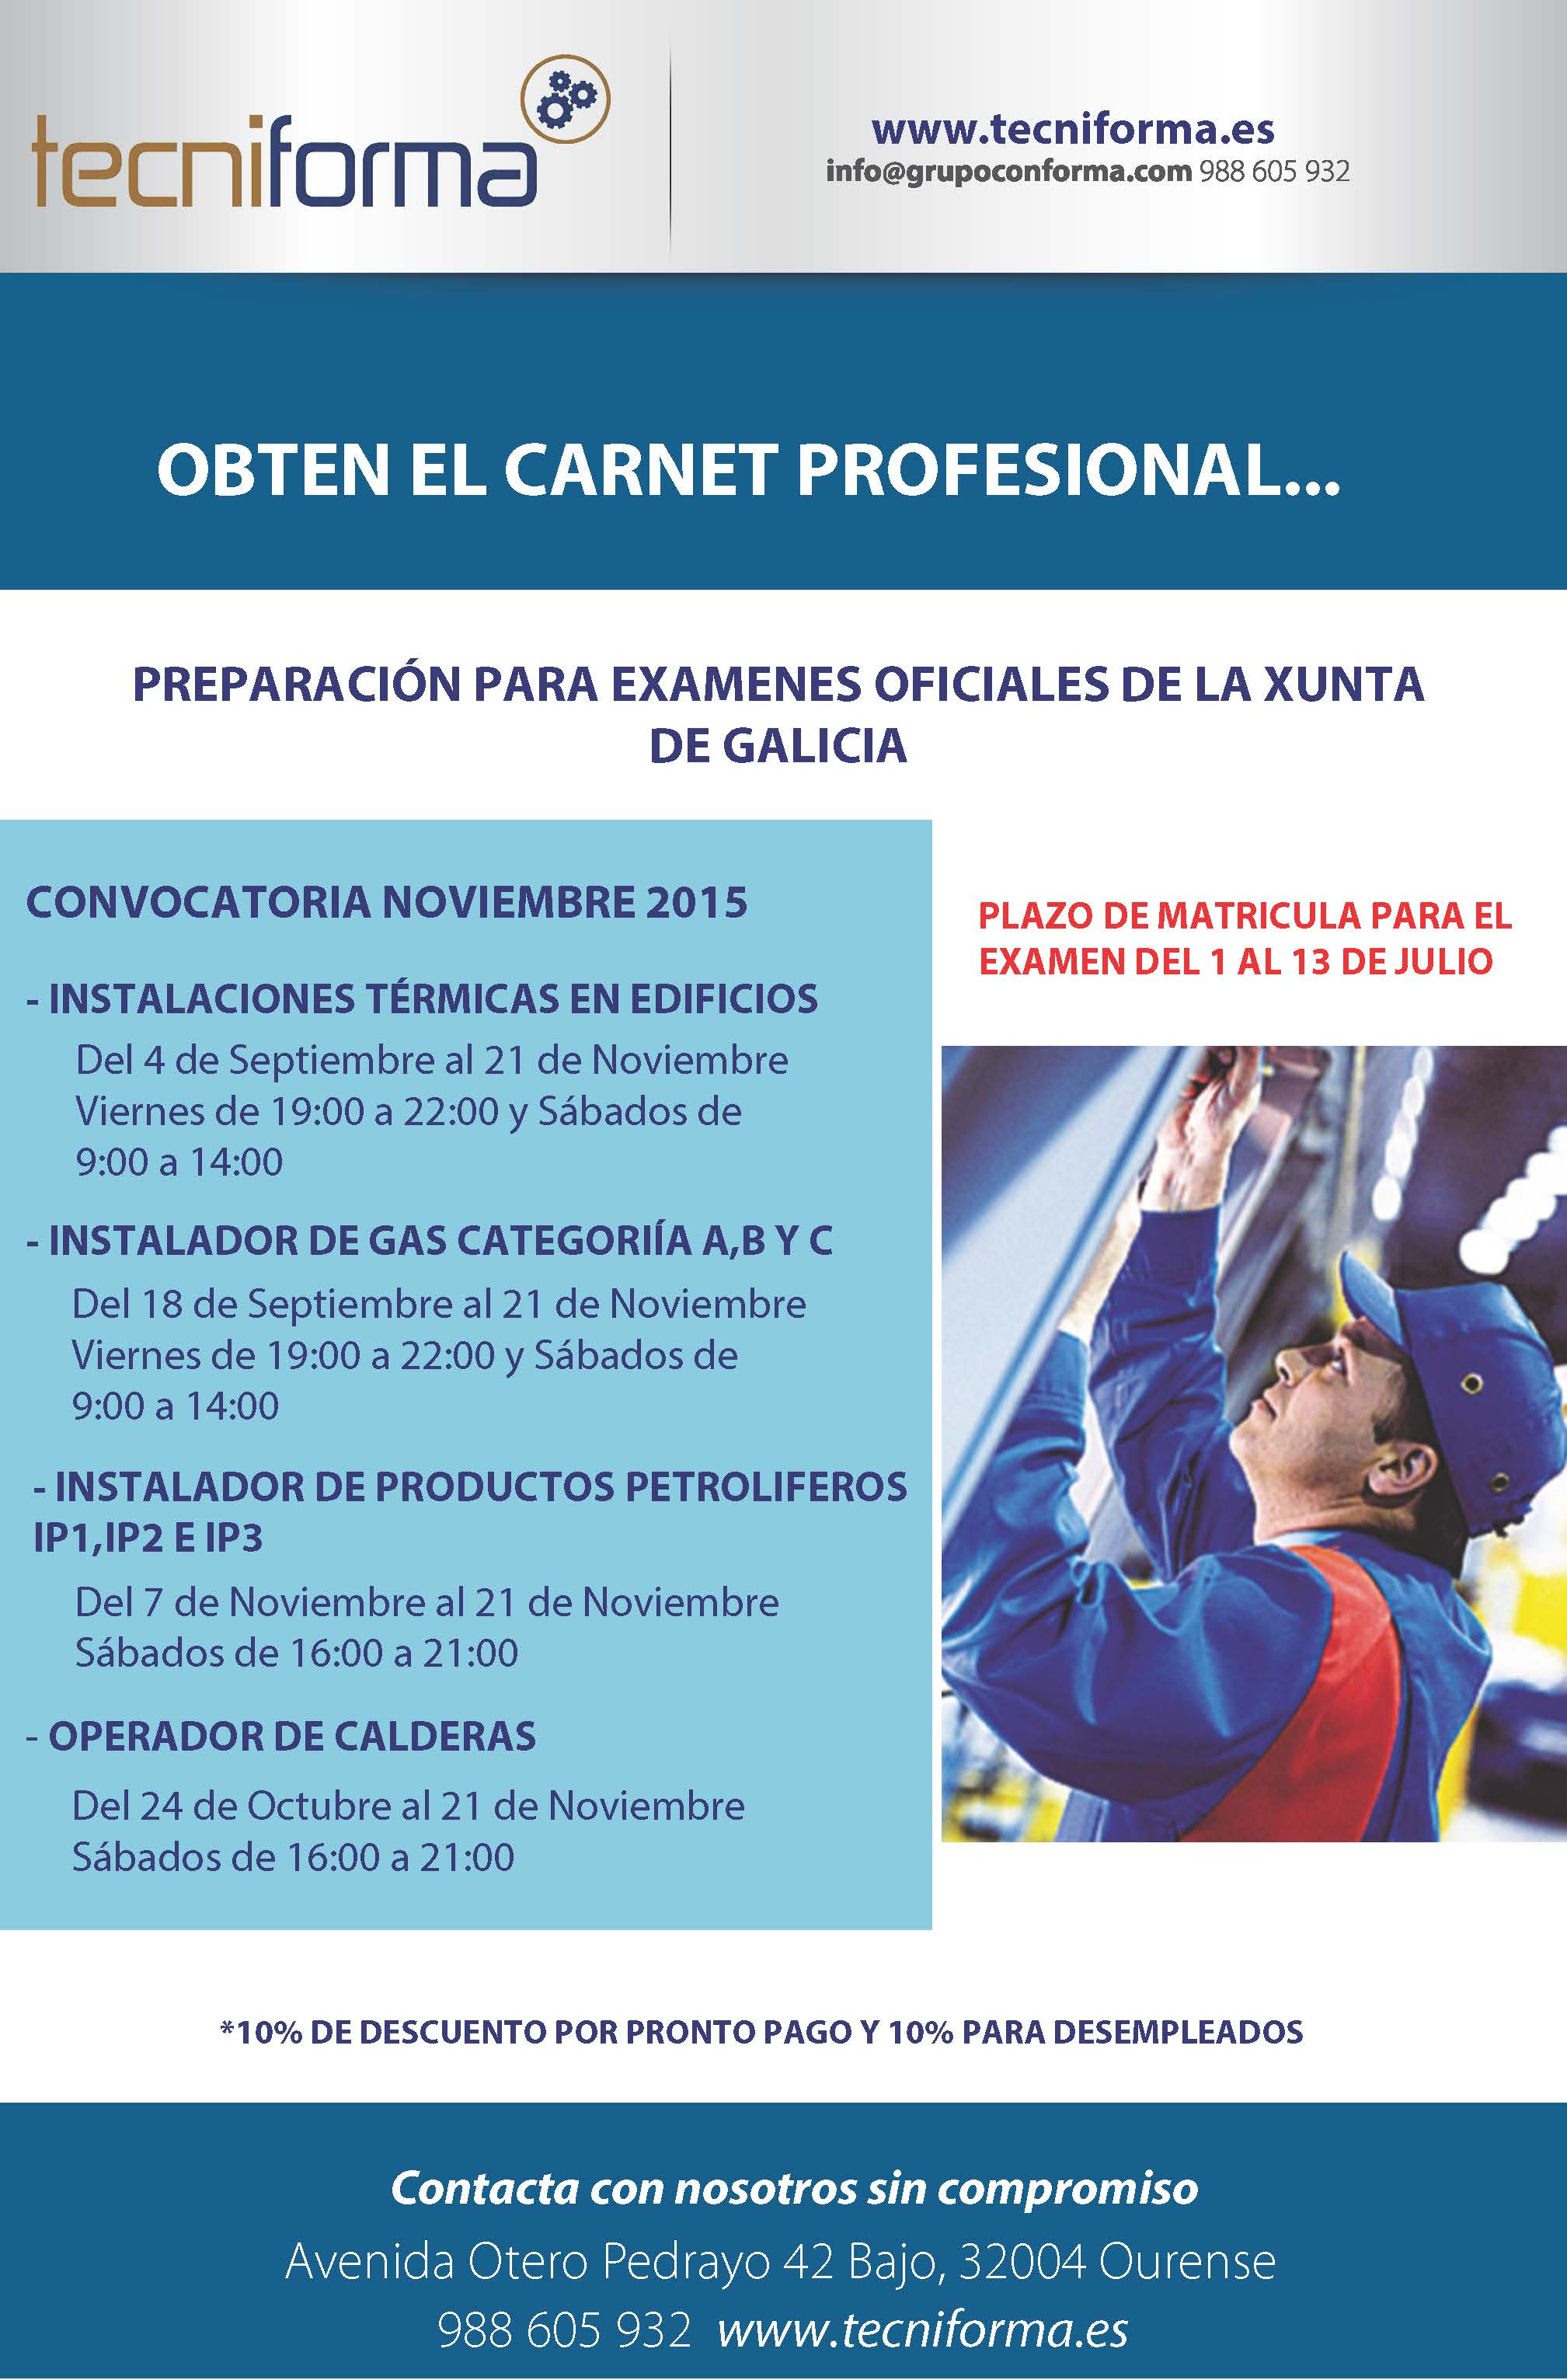 carnets profesionales 2